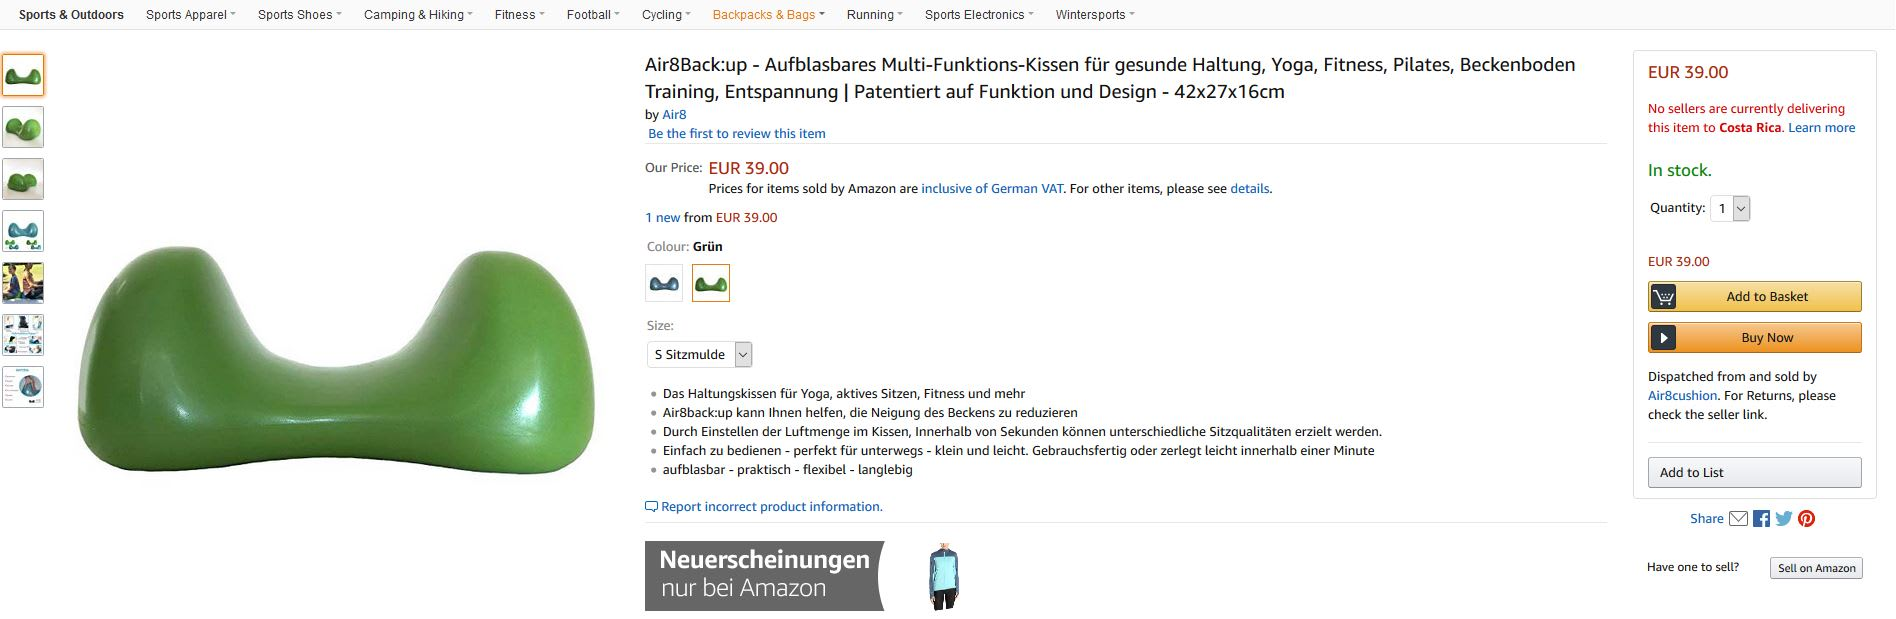 Amazon Bestellnummer Fake